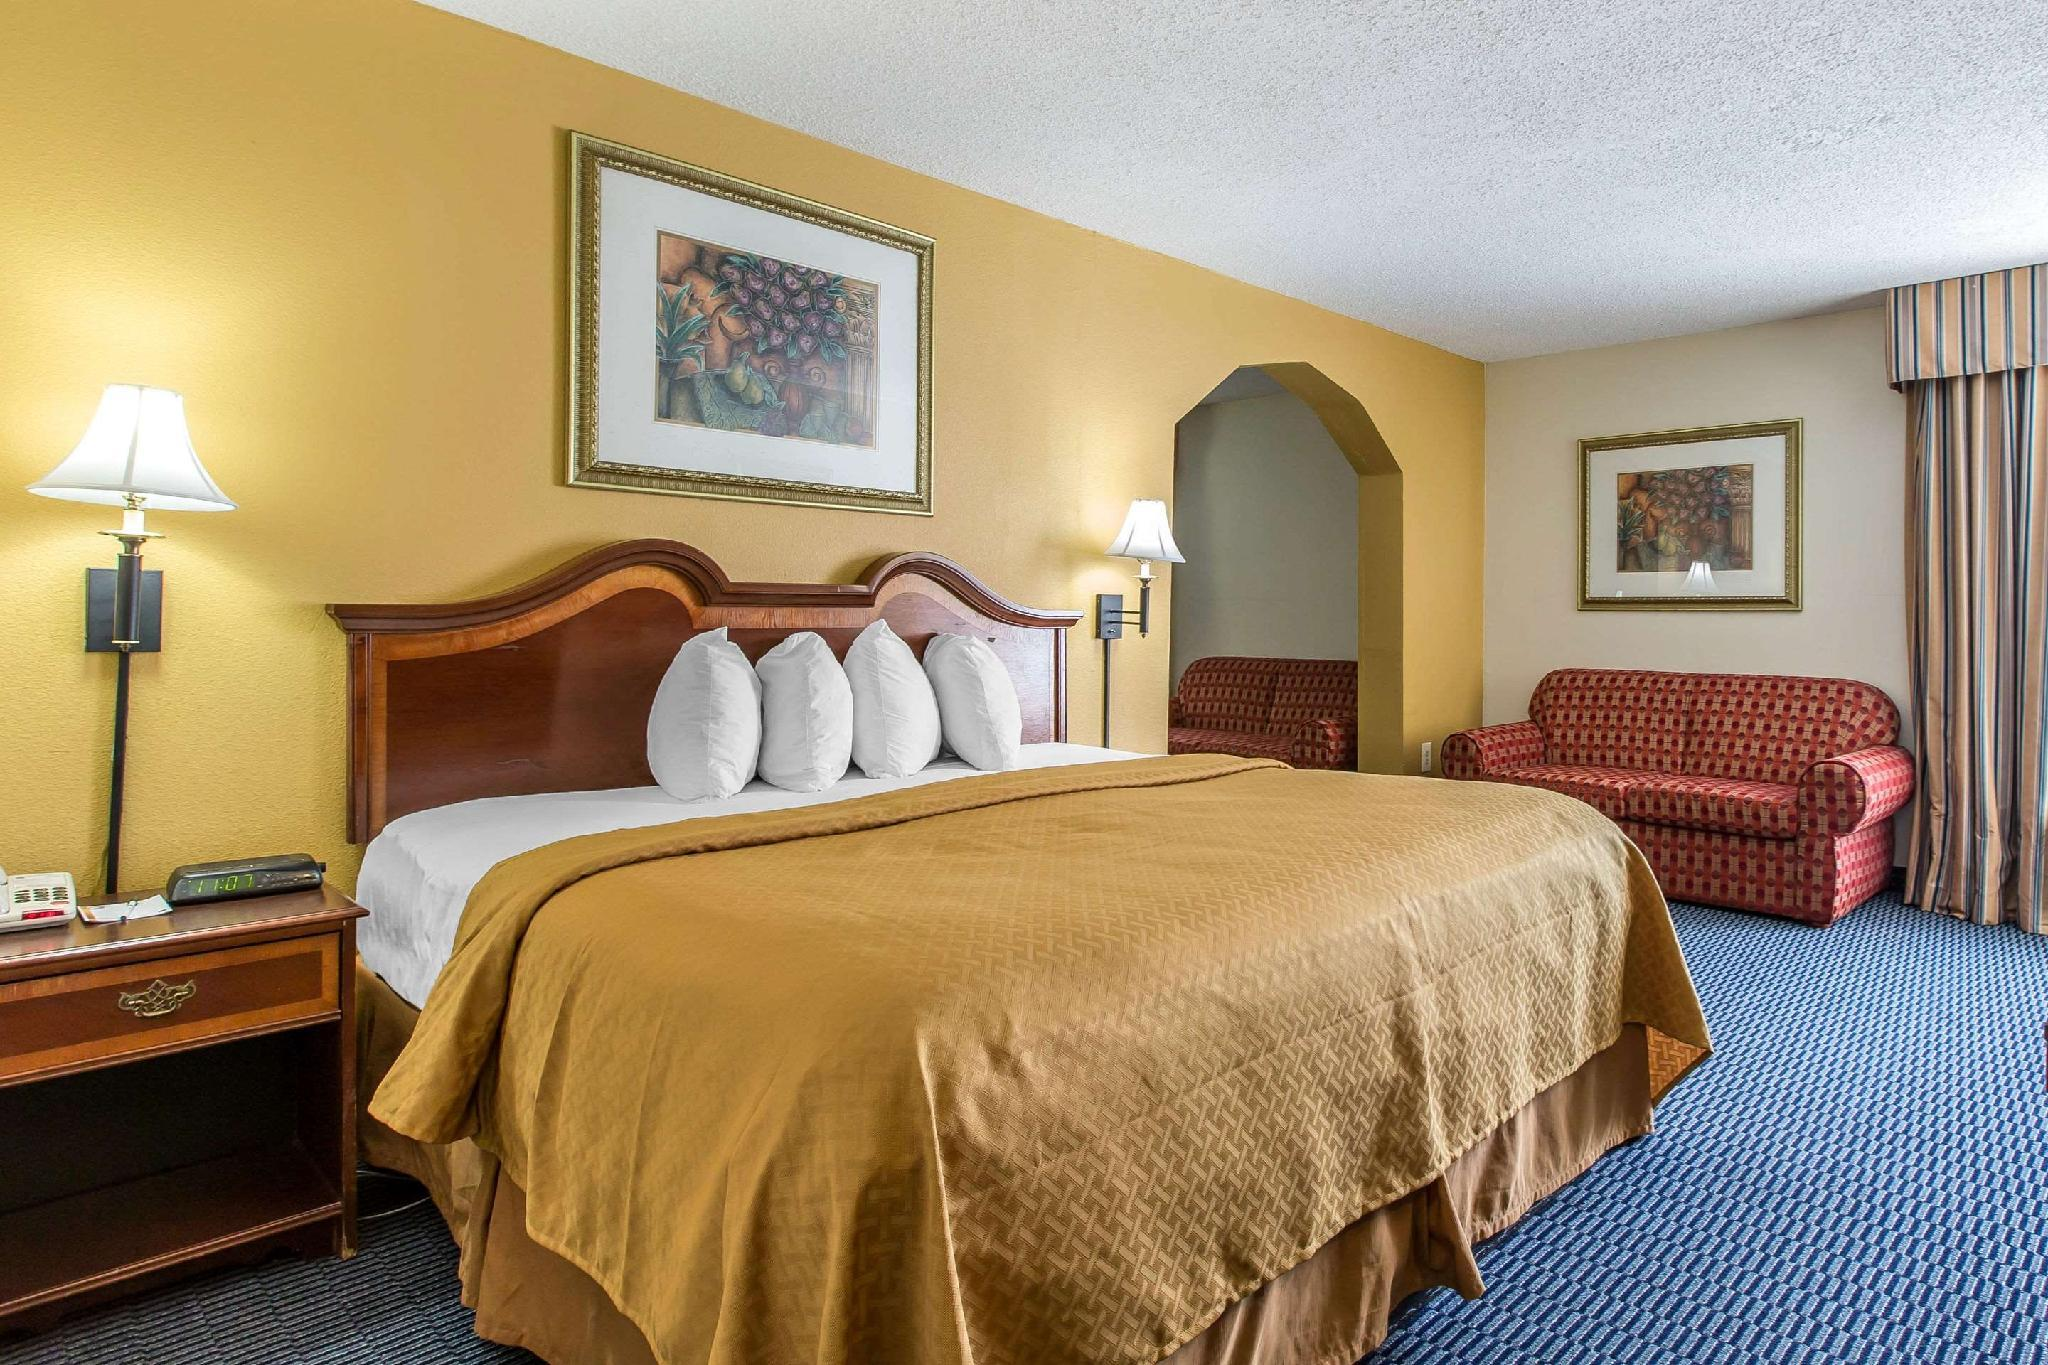 1 King Bed, One-Bedroom, Suite, Non-Smoking